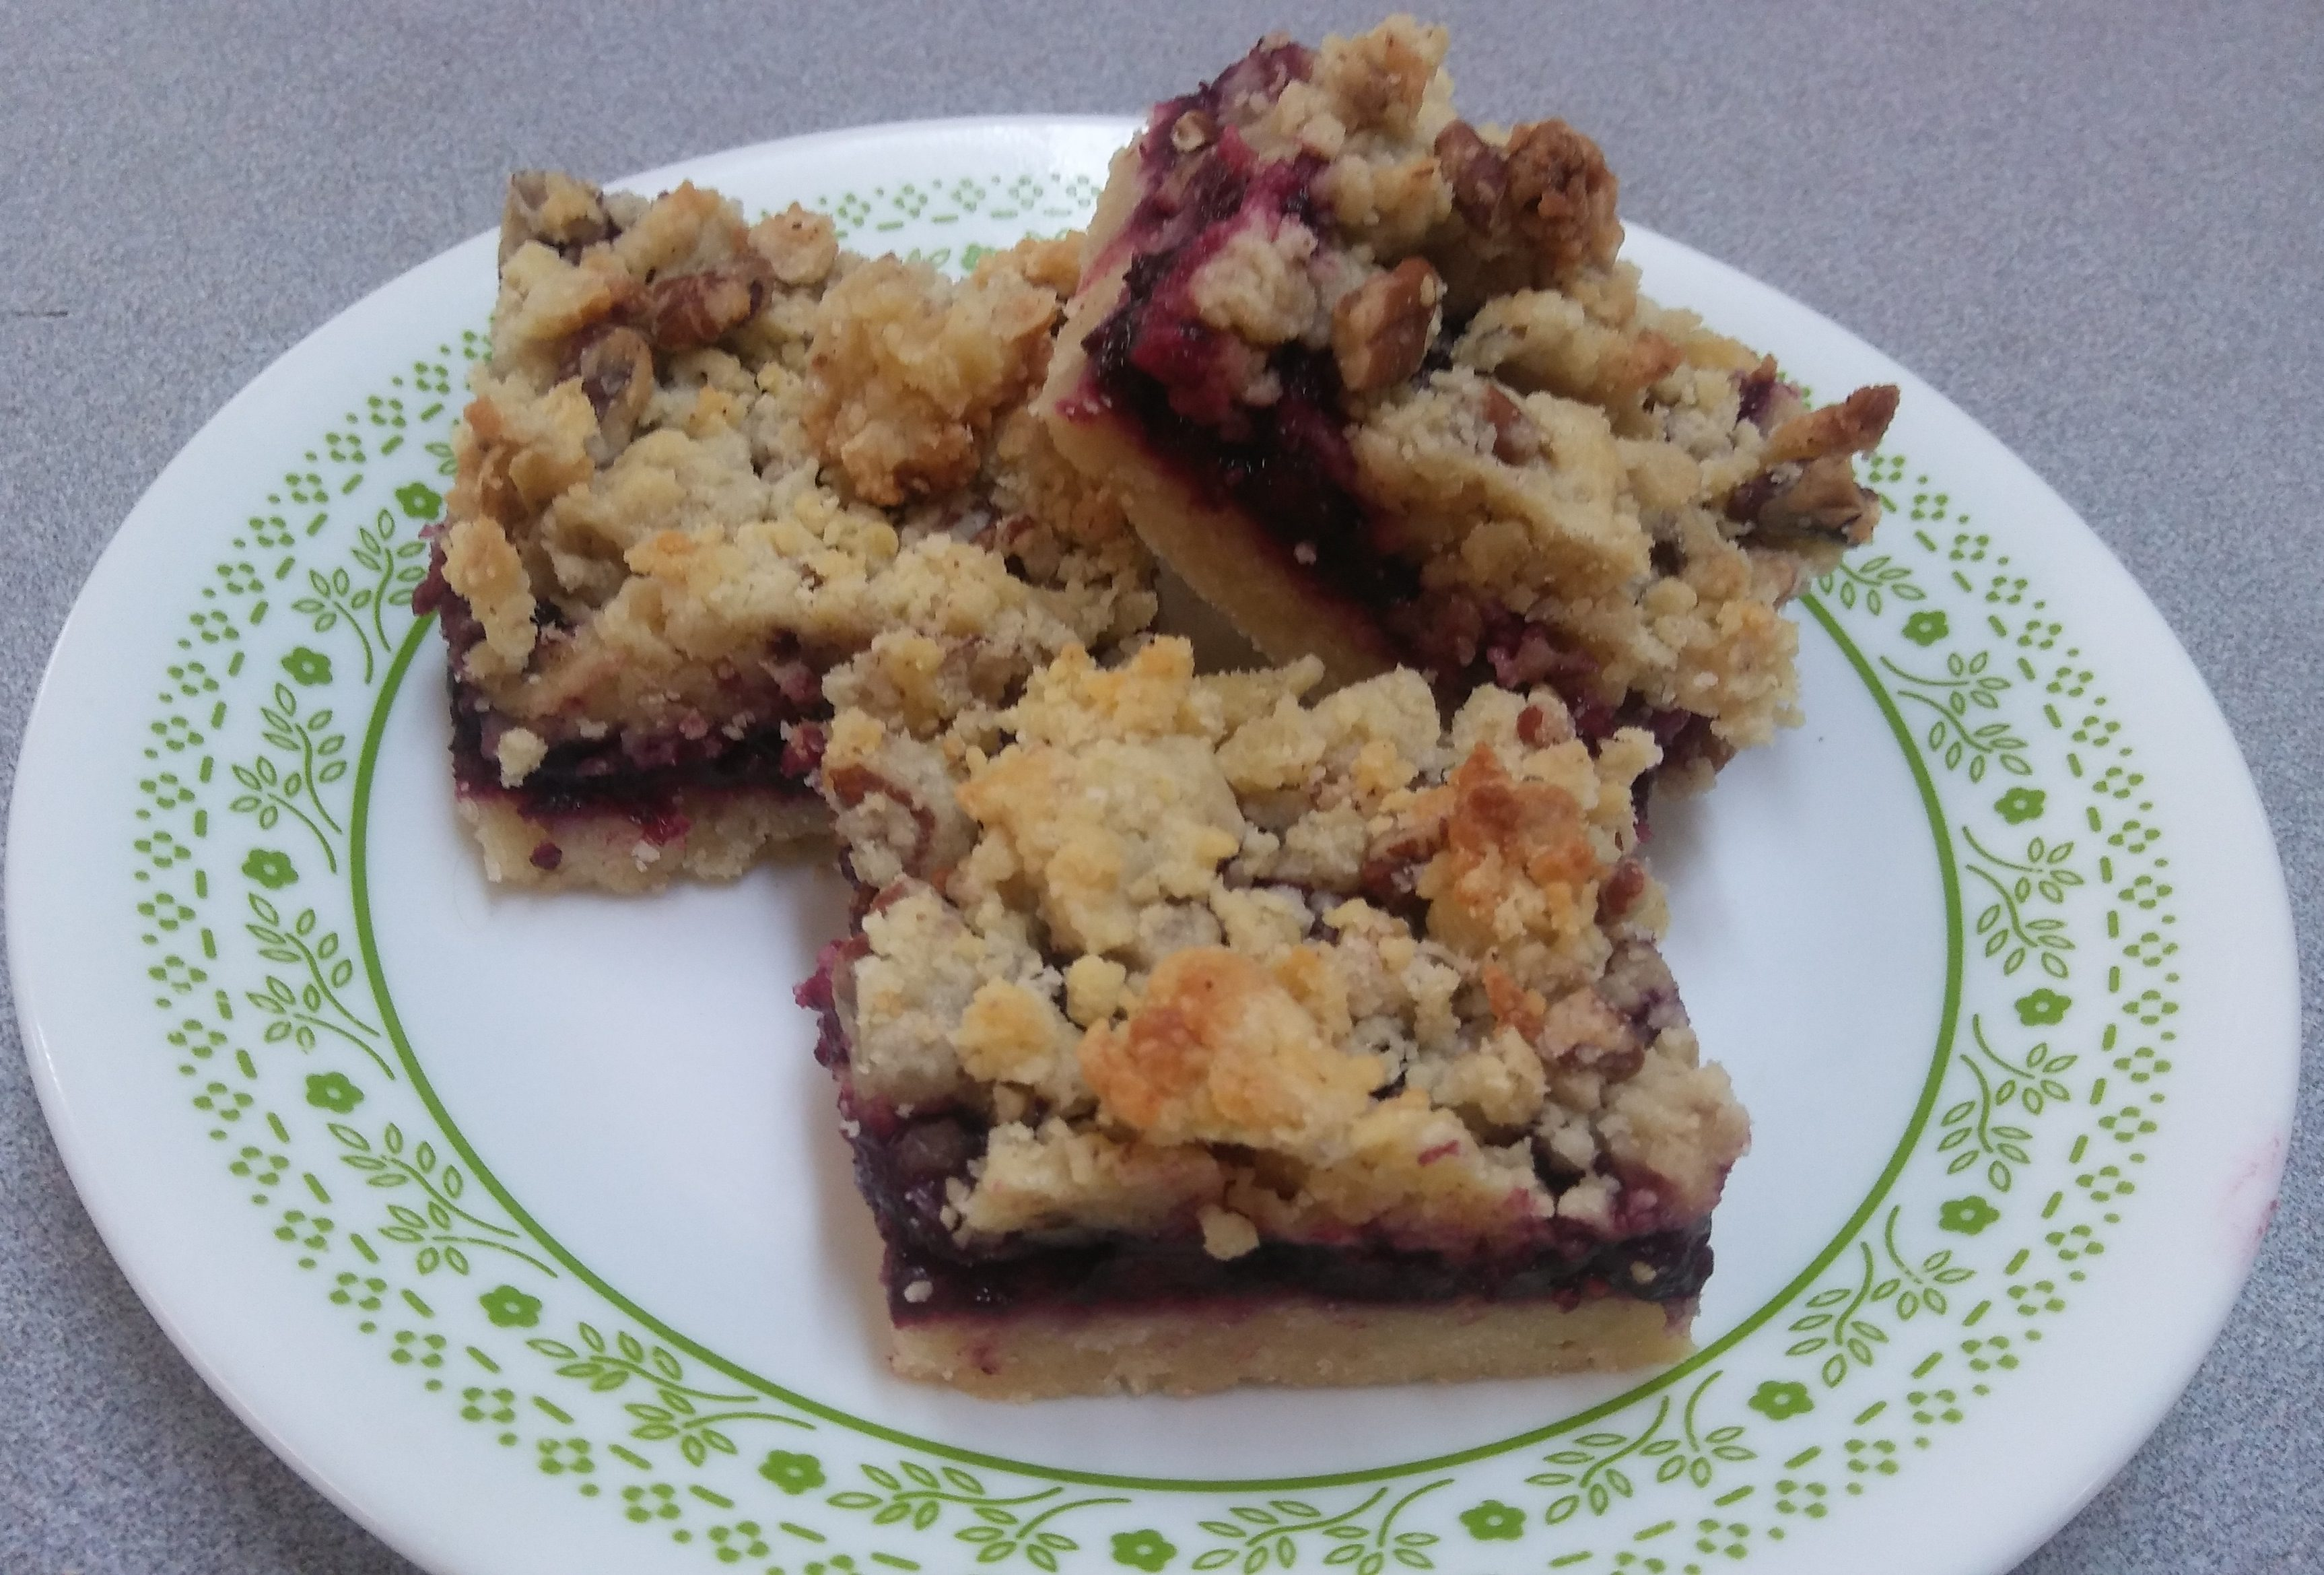 Fruit Cookie Bars – A Tantalizing Blend of Cranberry and Raspberry